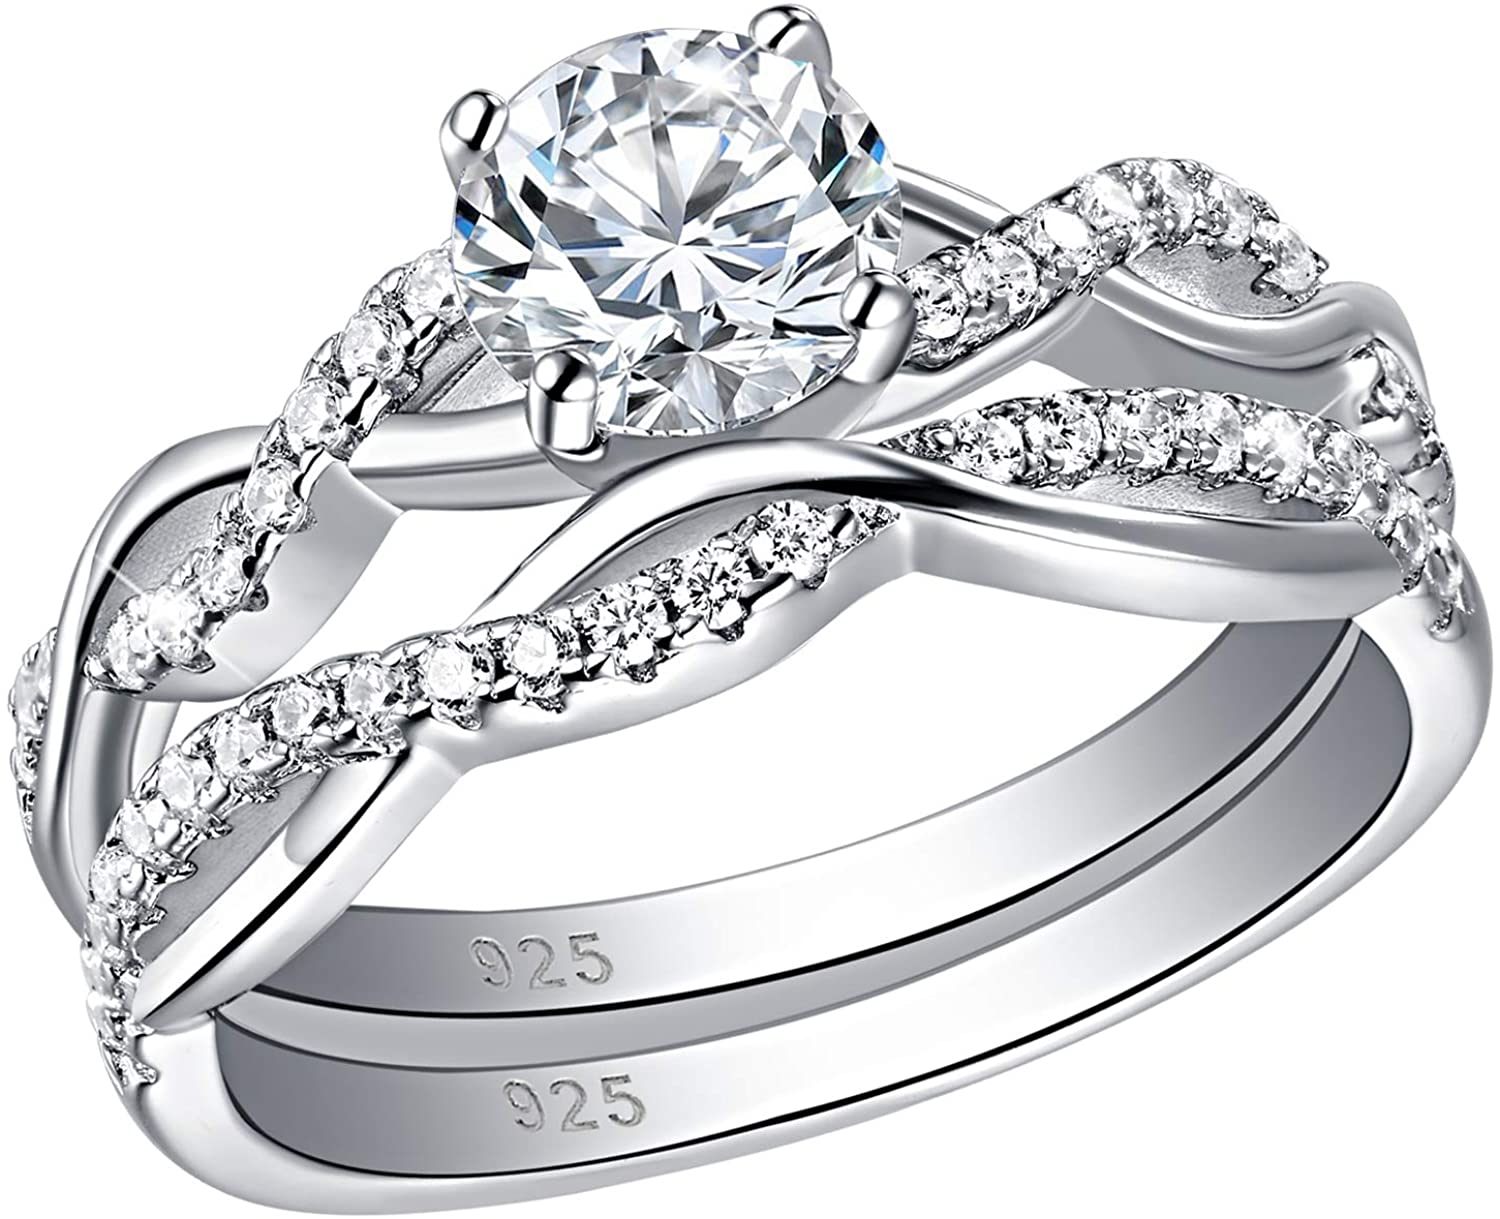 SHELOVES Infinity Engagement Wedding Ring Set White Round Cz for Women 925 Sterling Silver Size 5-12